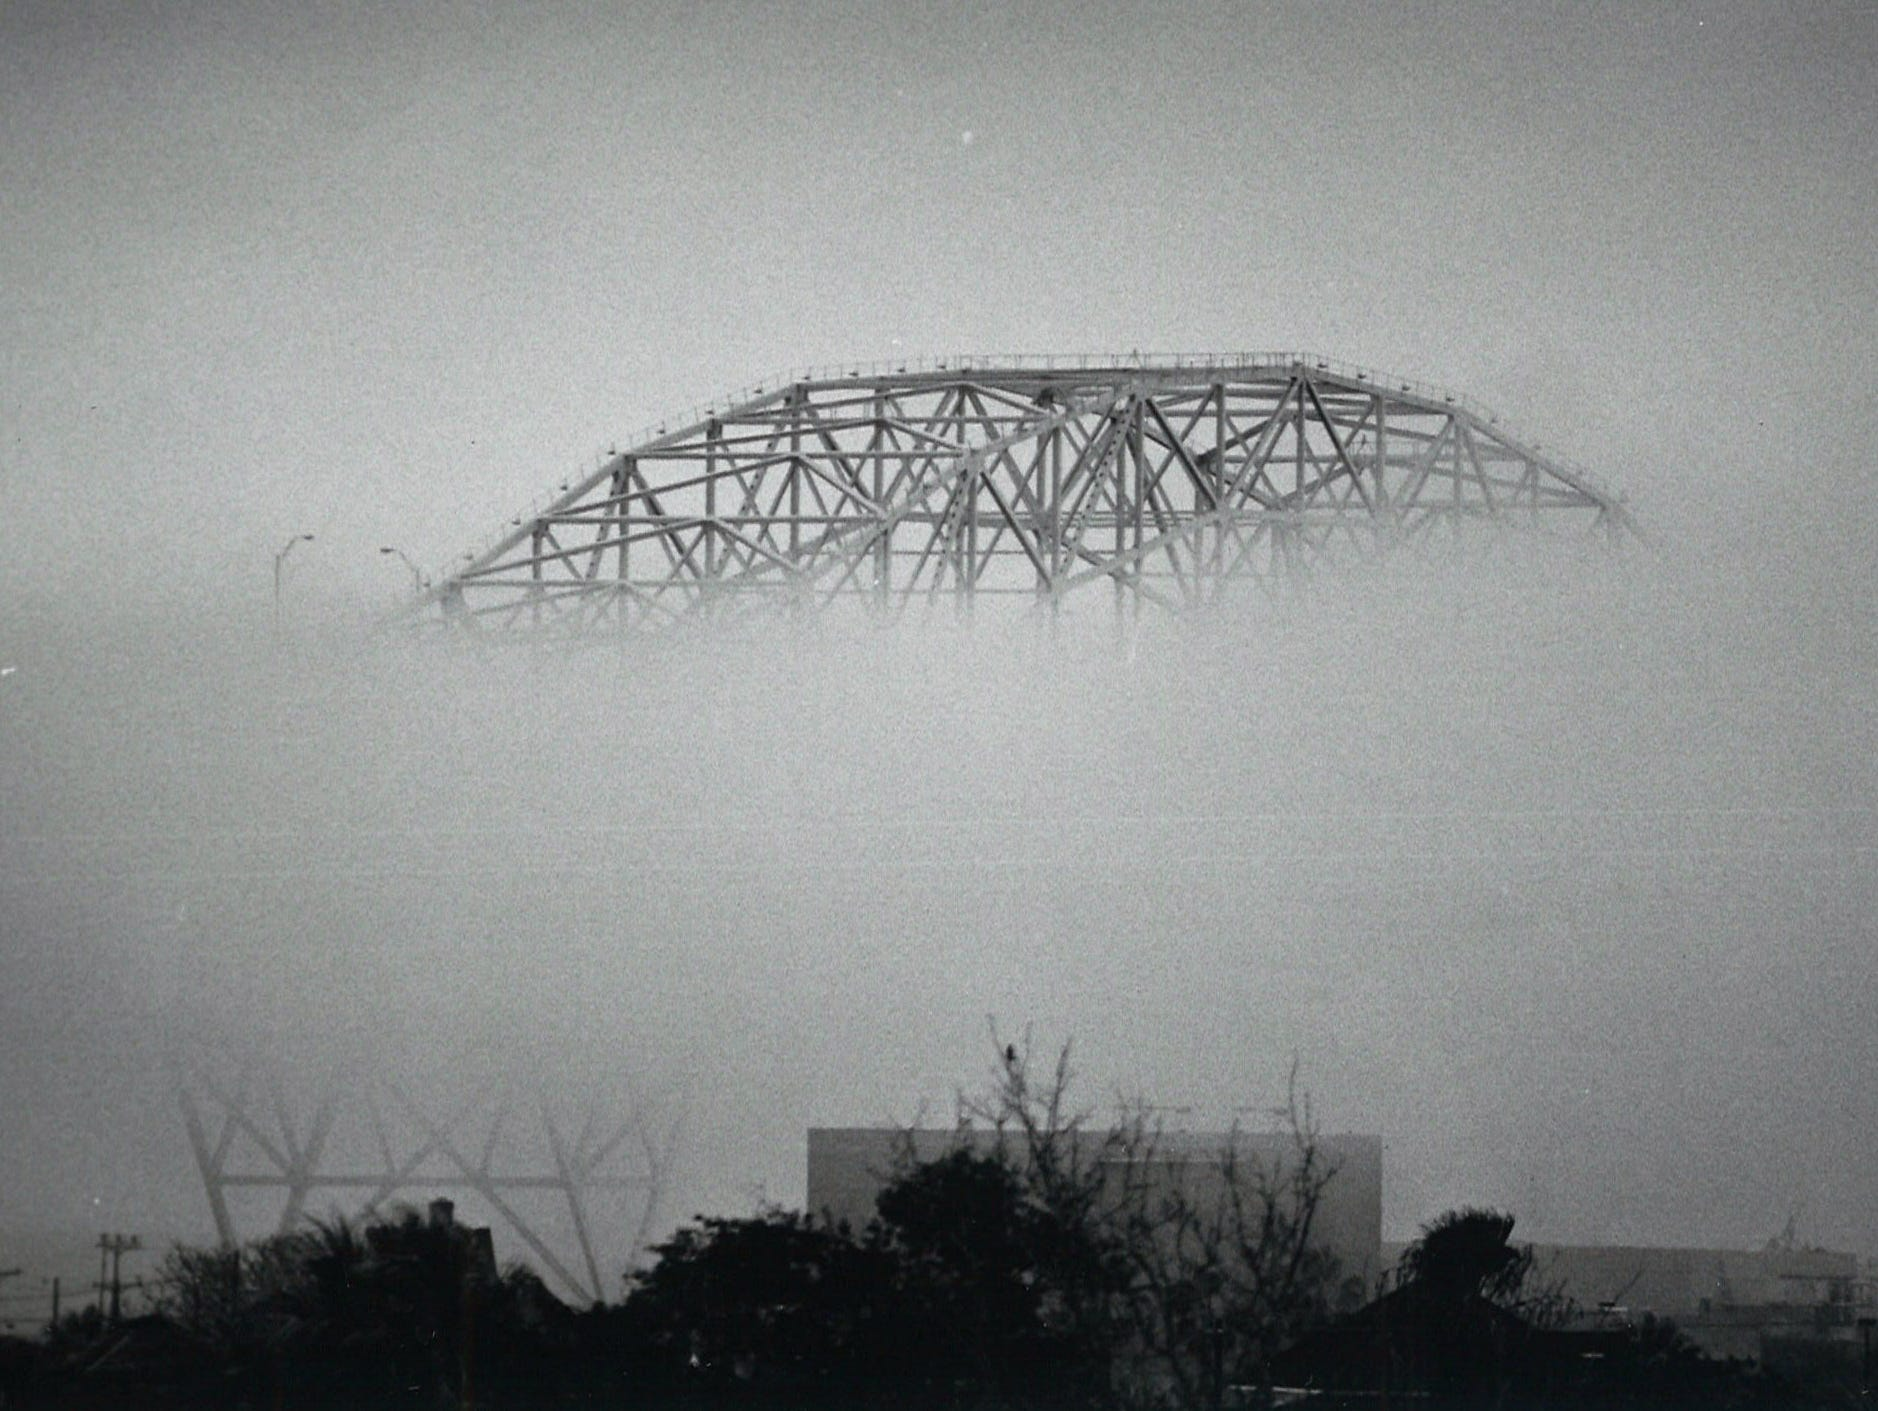 The Harbor Bridge nearly enshrouded by fog in Corpus Christi on Dec. 28, 1989.